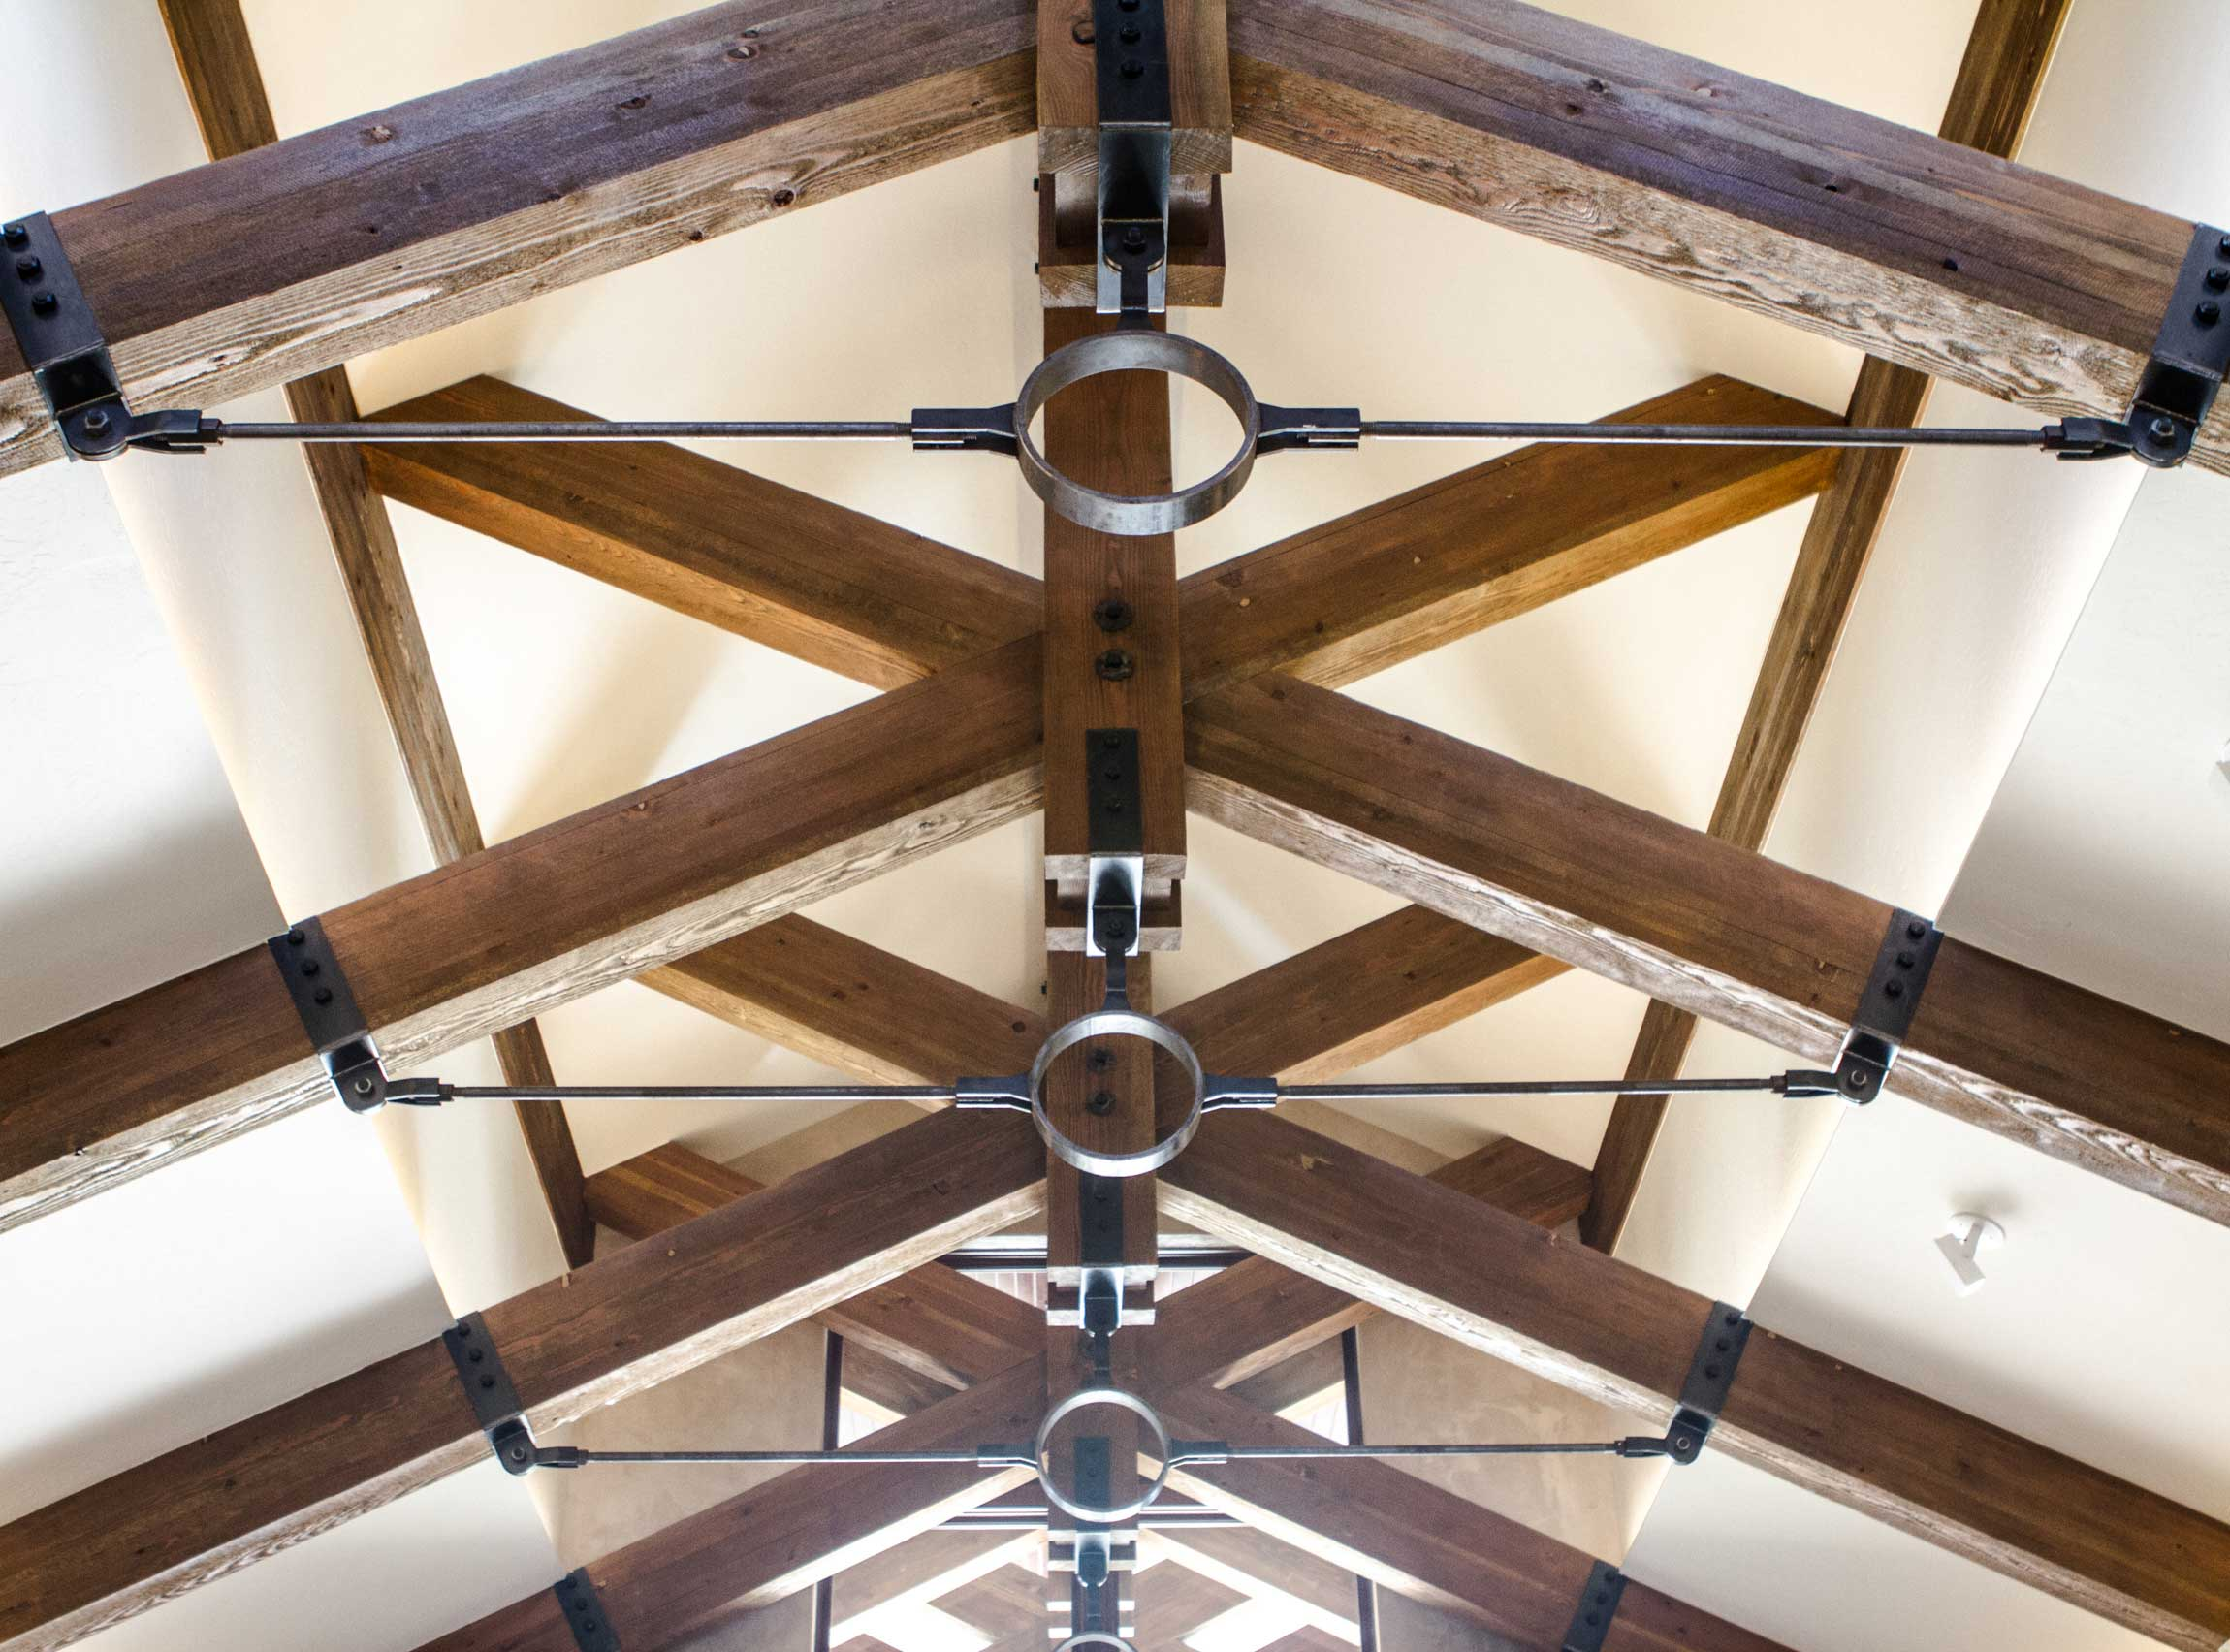 vaulted ceiling in Black Bull Residence designed by Elizabeth Robb Interiors